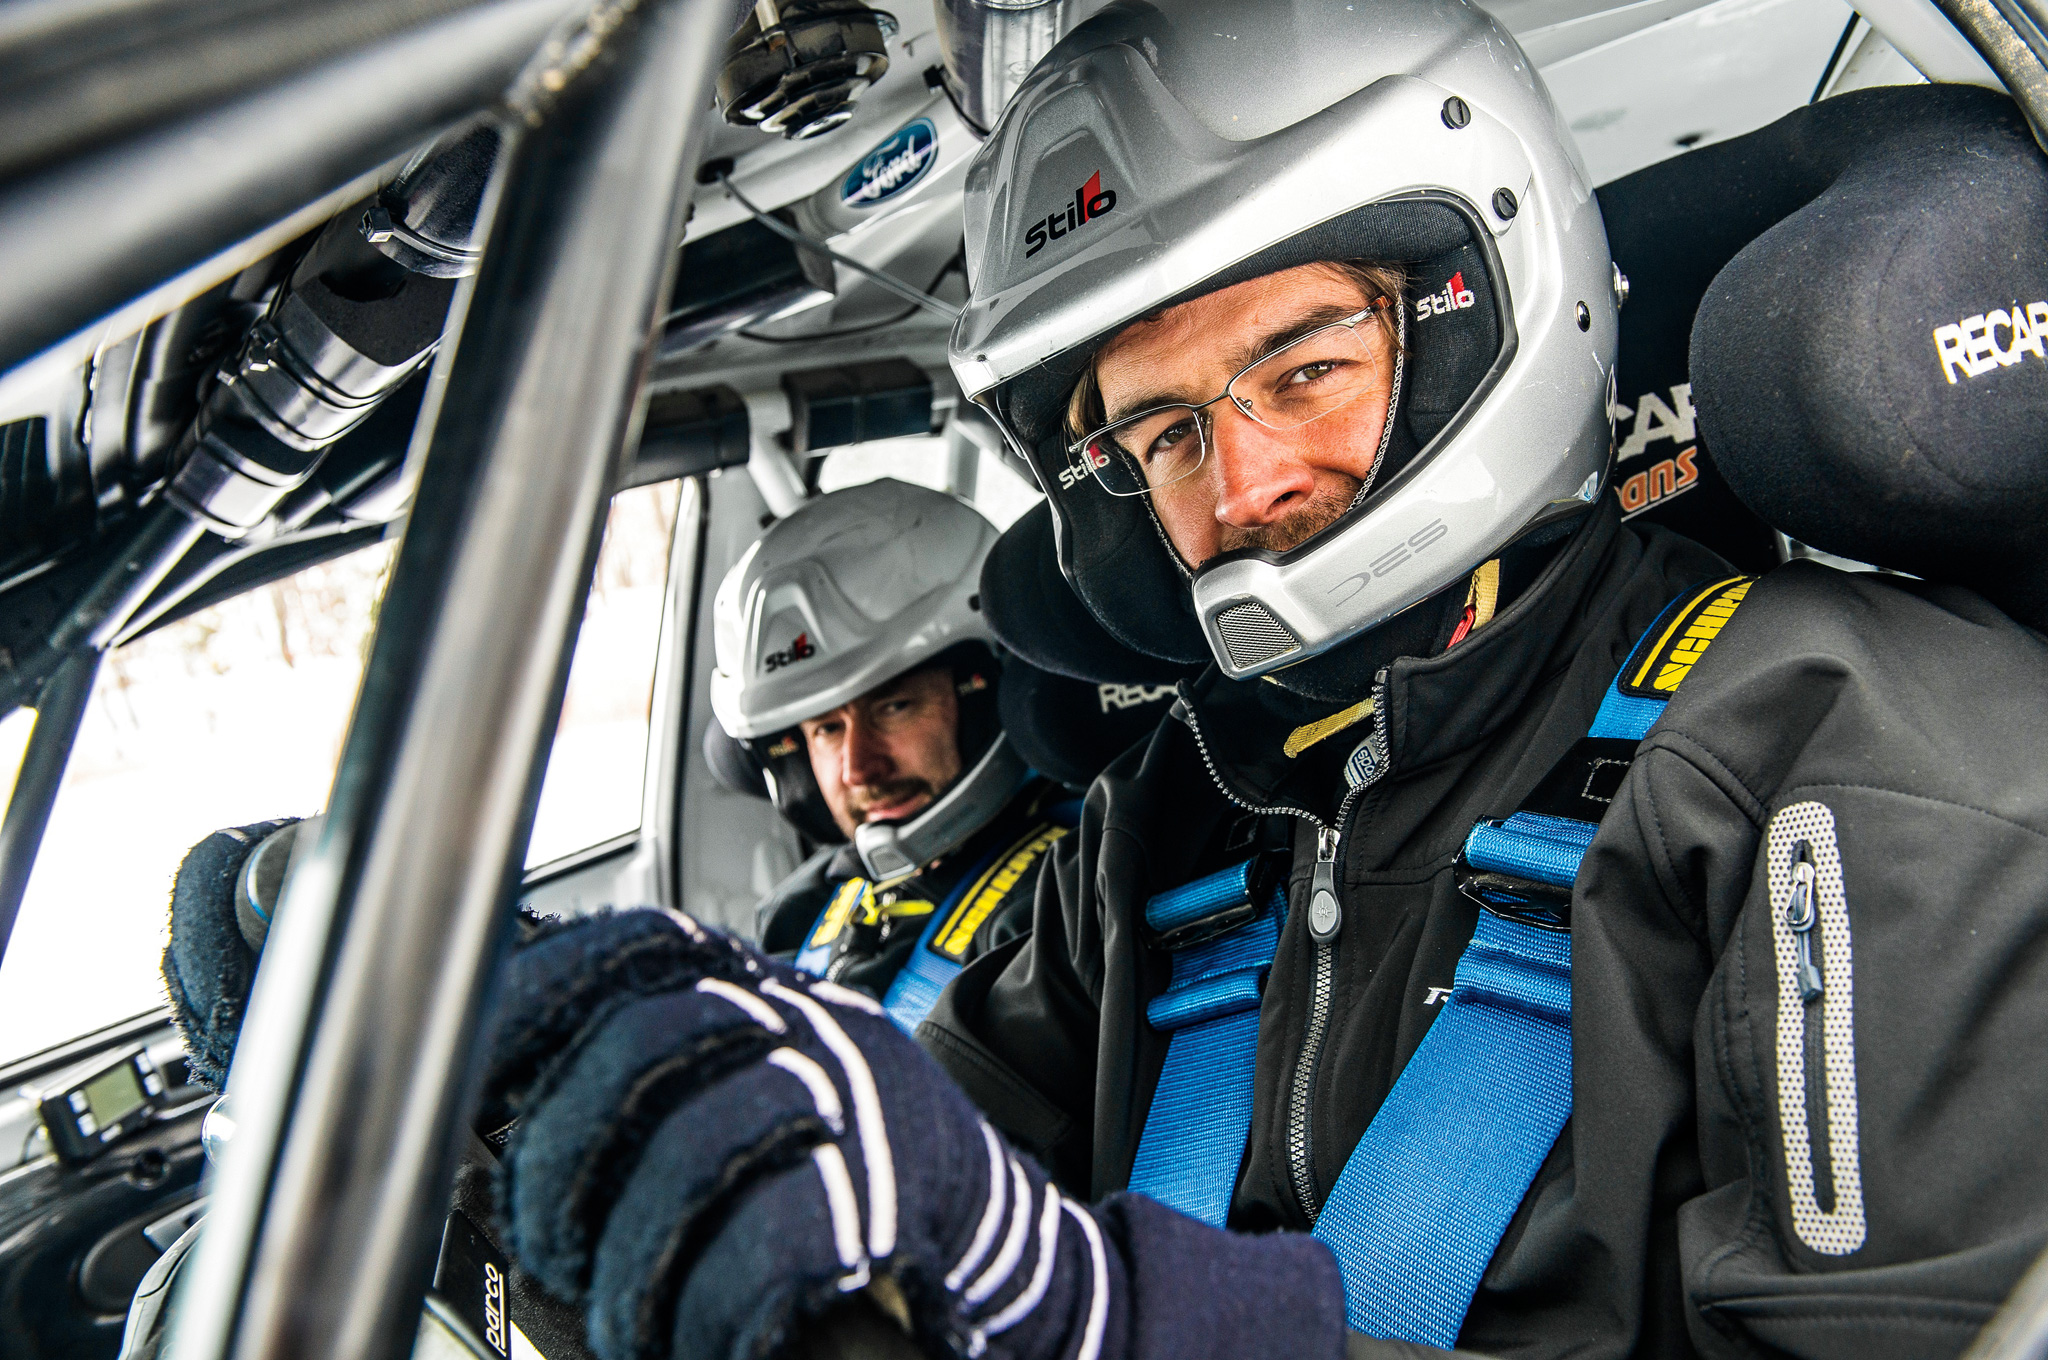 Driver Andrew Comrie-Picard and navigator Ole Holter wear helmets with integrated mics so they can hear one another over Team O'Neil's No. 20 Ford Fiesta ST rally car.